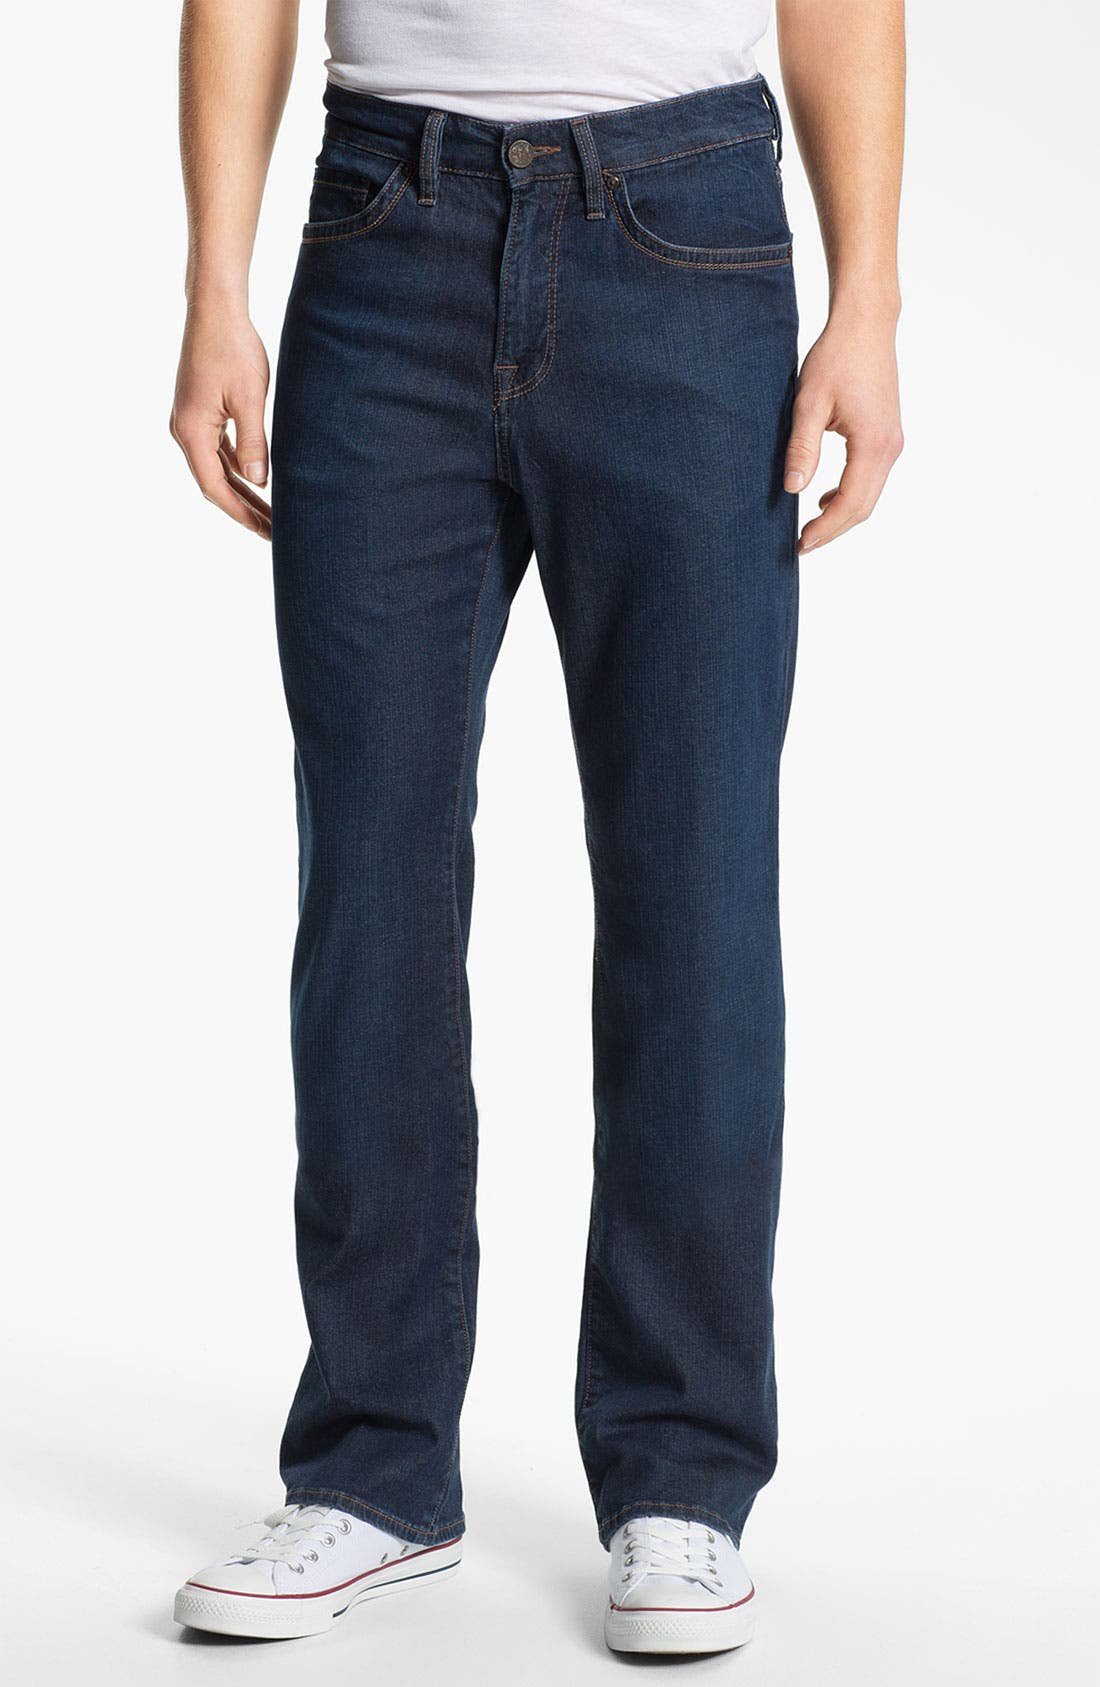 34 HERITAGE,                             'Charisma' Classic Relaxed Fit Jeans,                             Main thumbnail 1, color,                             DARK CASHMERE WASH